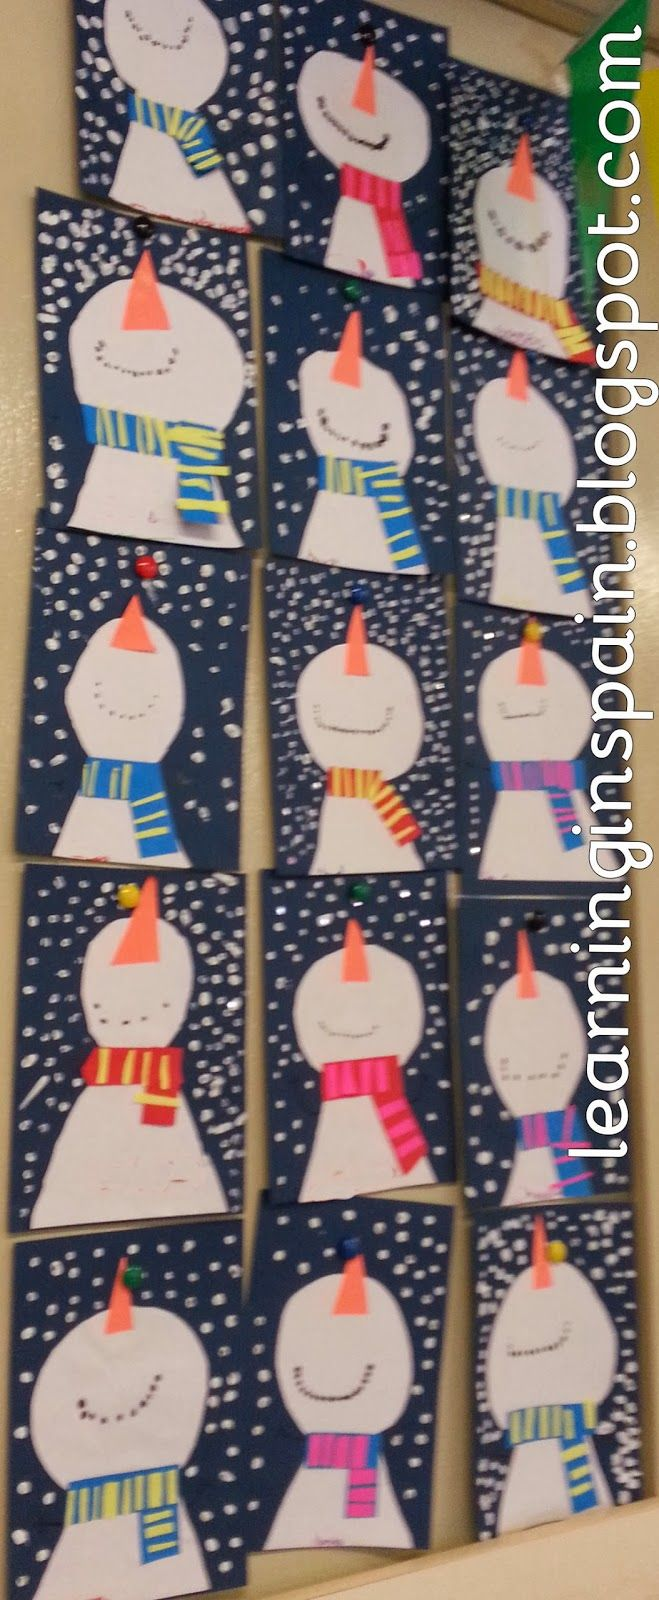 Learning in Spain: Christmas and getting ready for winter